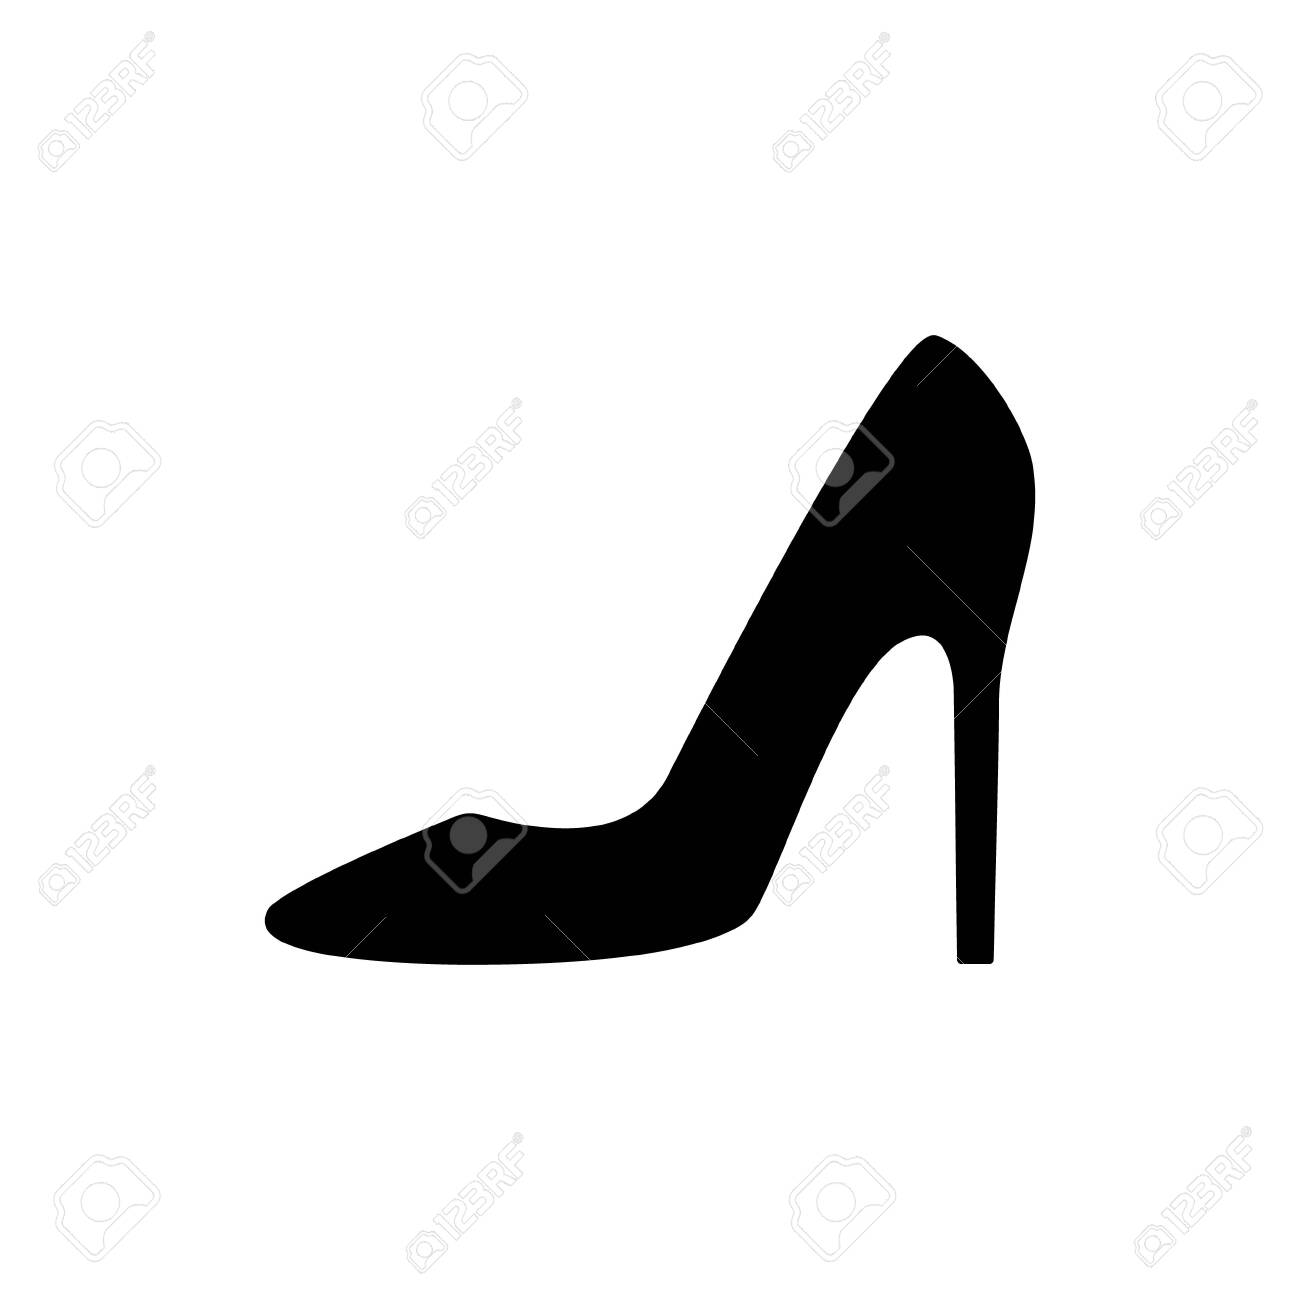 Women shoes icon. Women high-heeled shoes outline vector illustration isolated on white. - 153562017